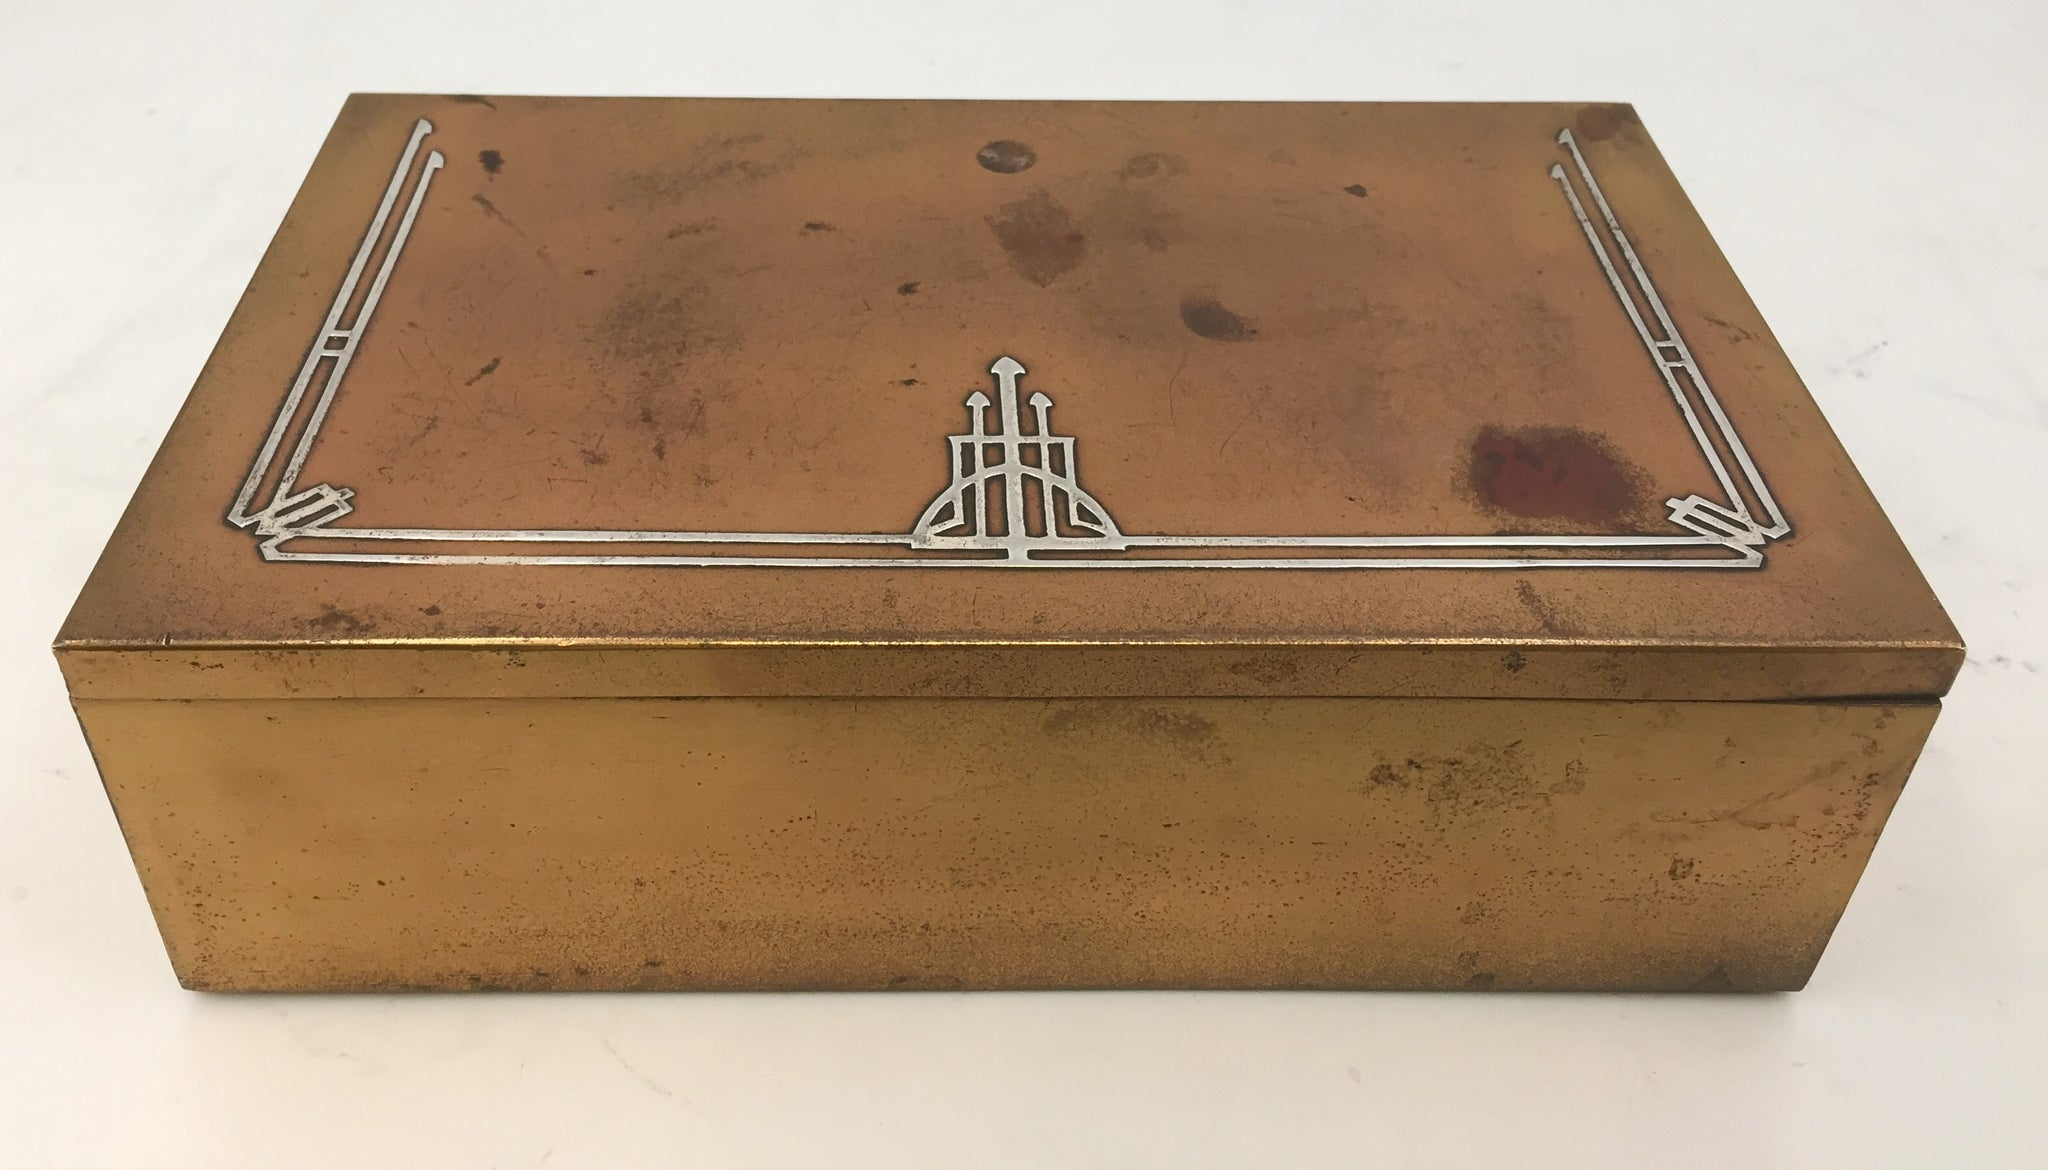 Mixed Metal Bronze and Sterling Silver Presentation/ Humidor Box in Art Deco Style